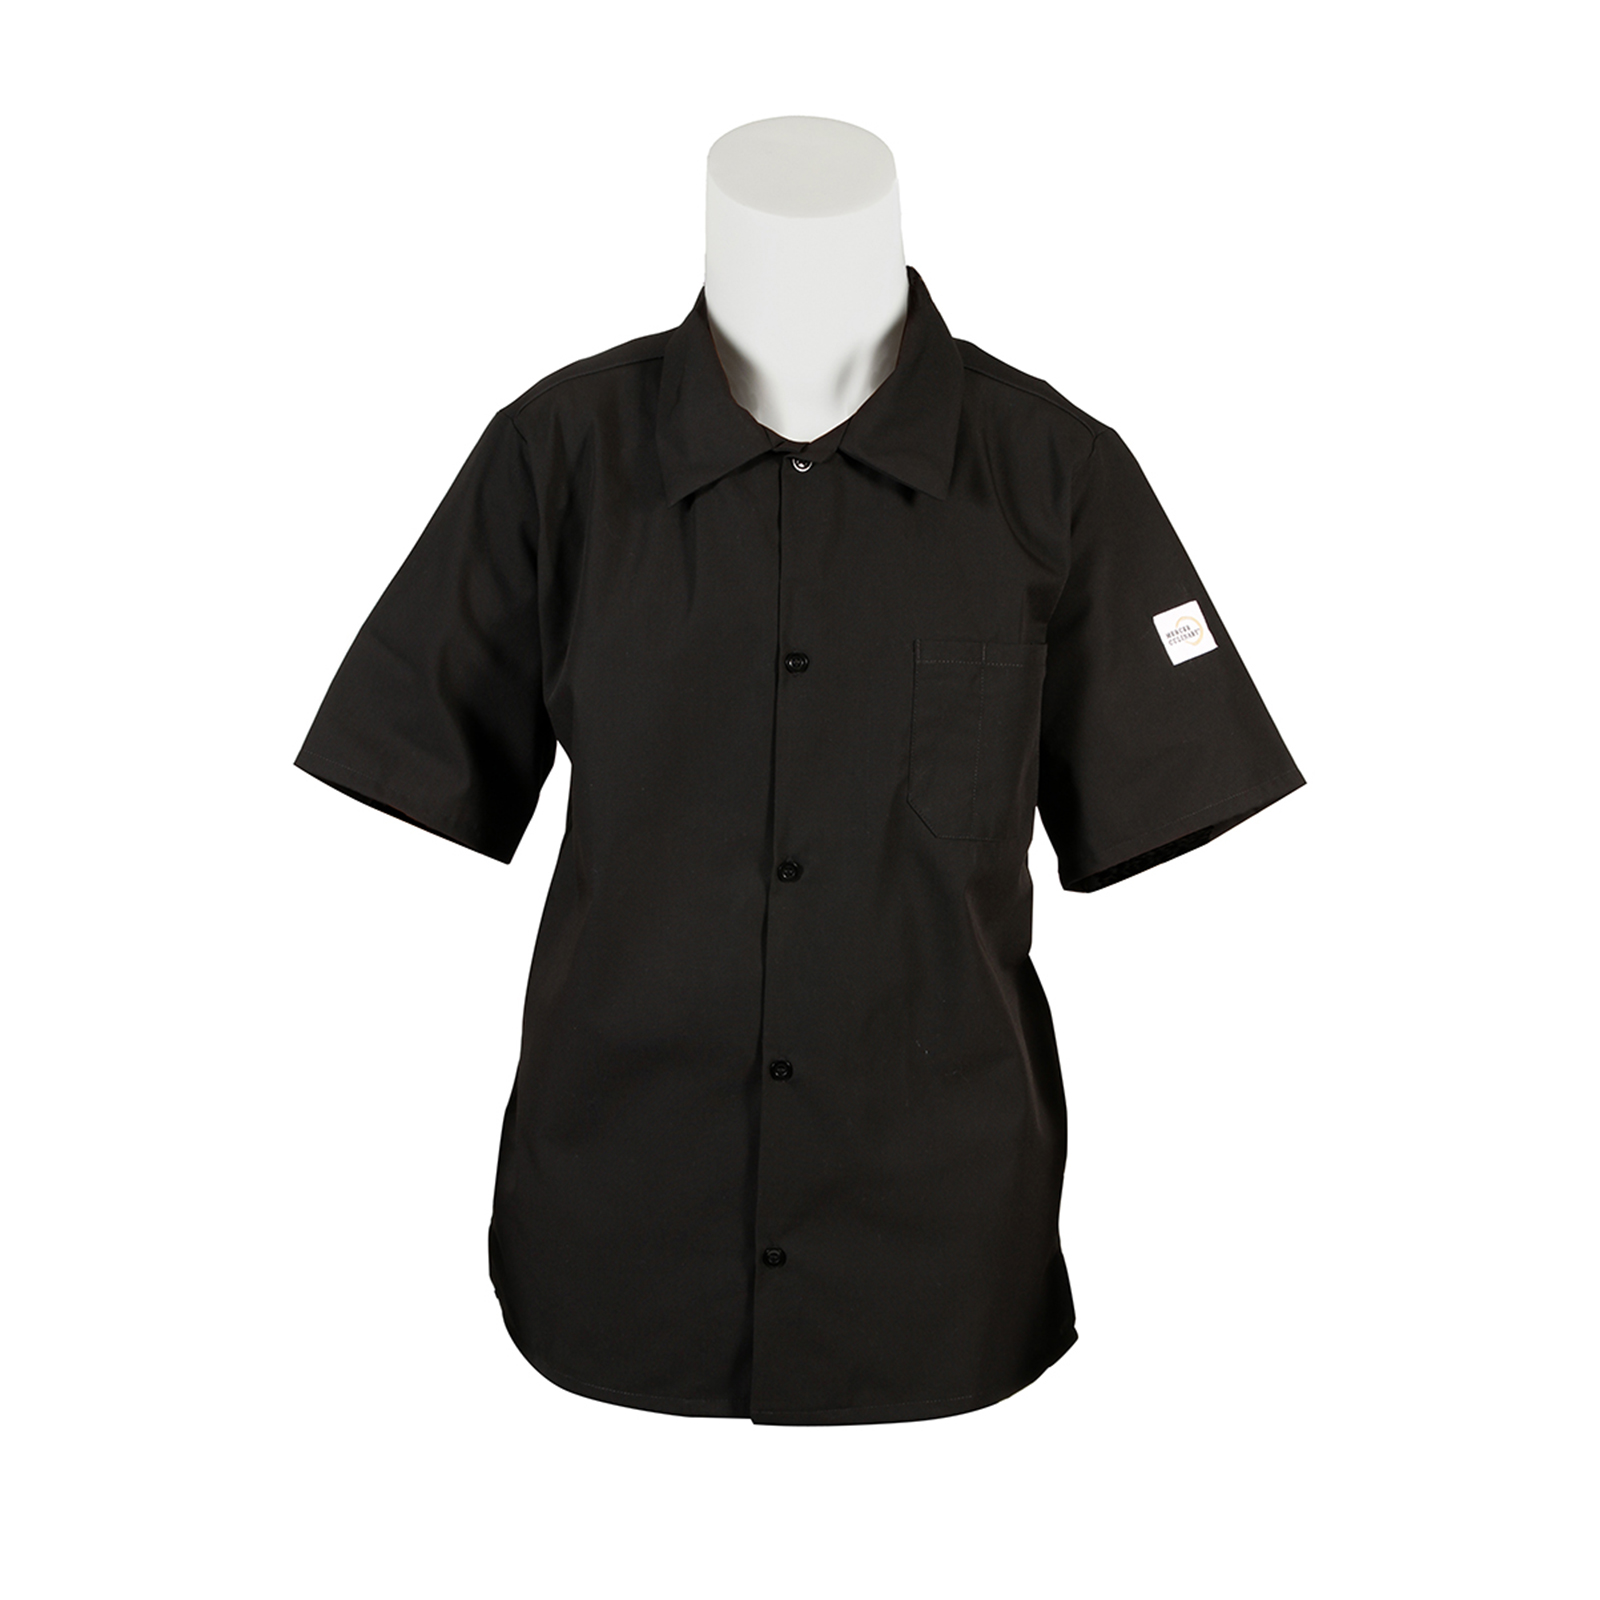 Mercer Culinary M60200BKXS cook's shirt